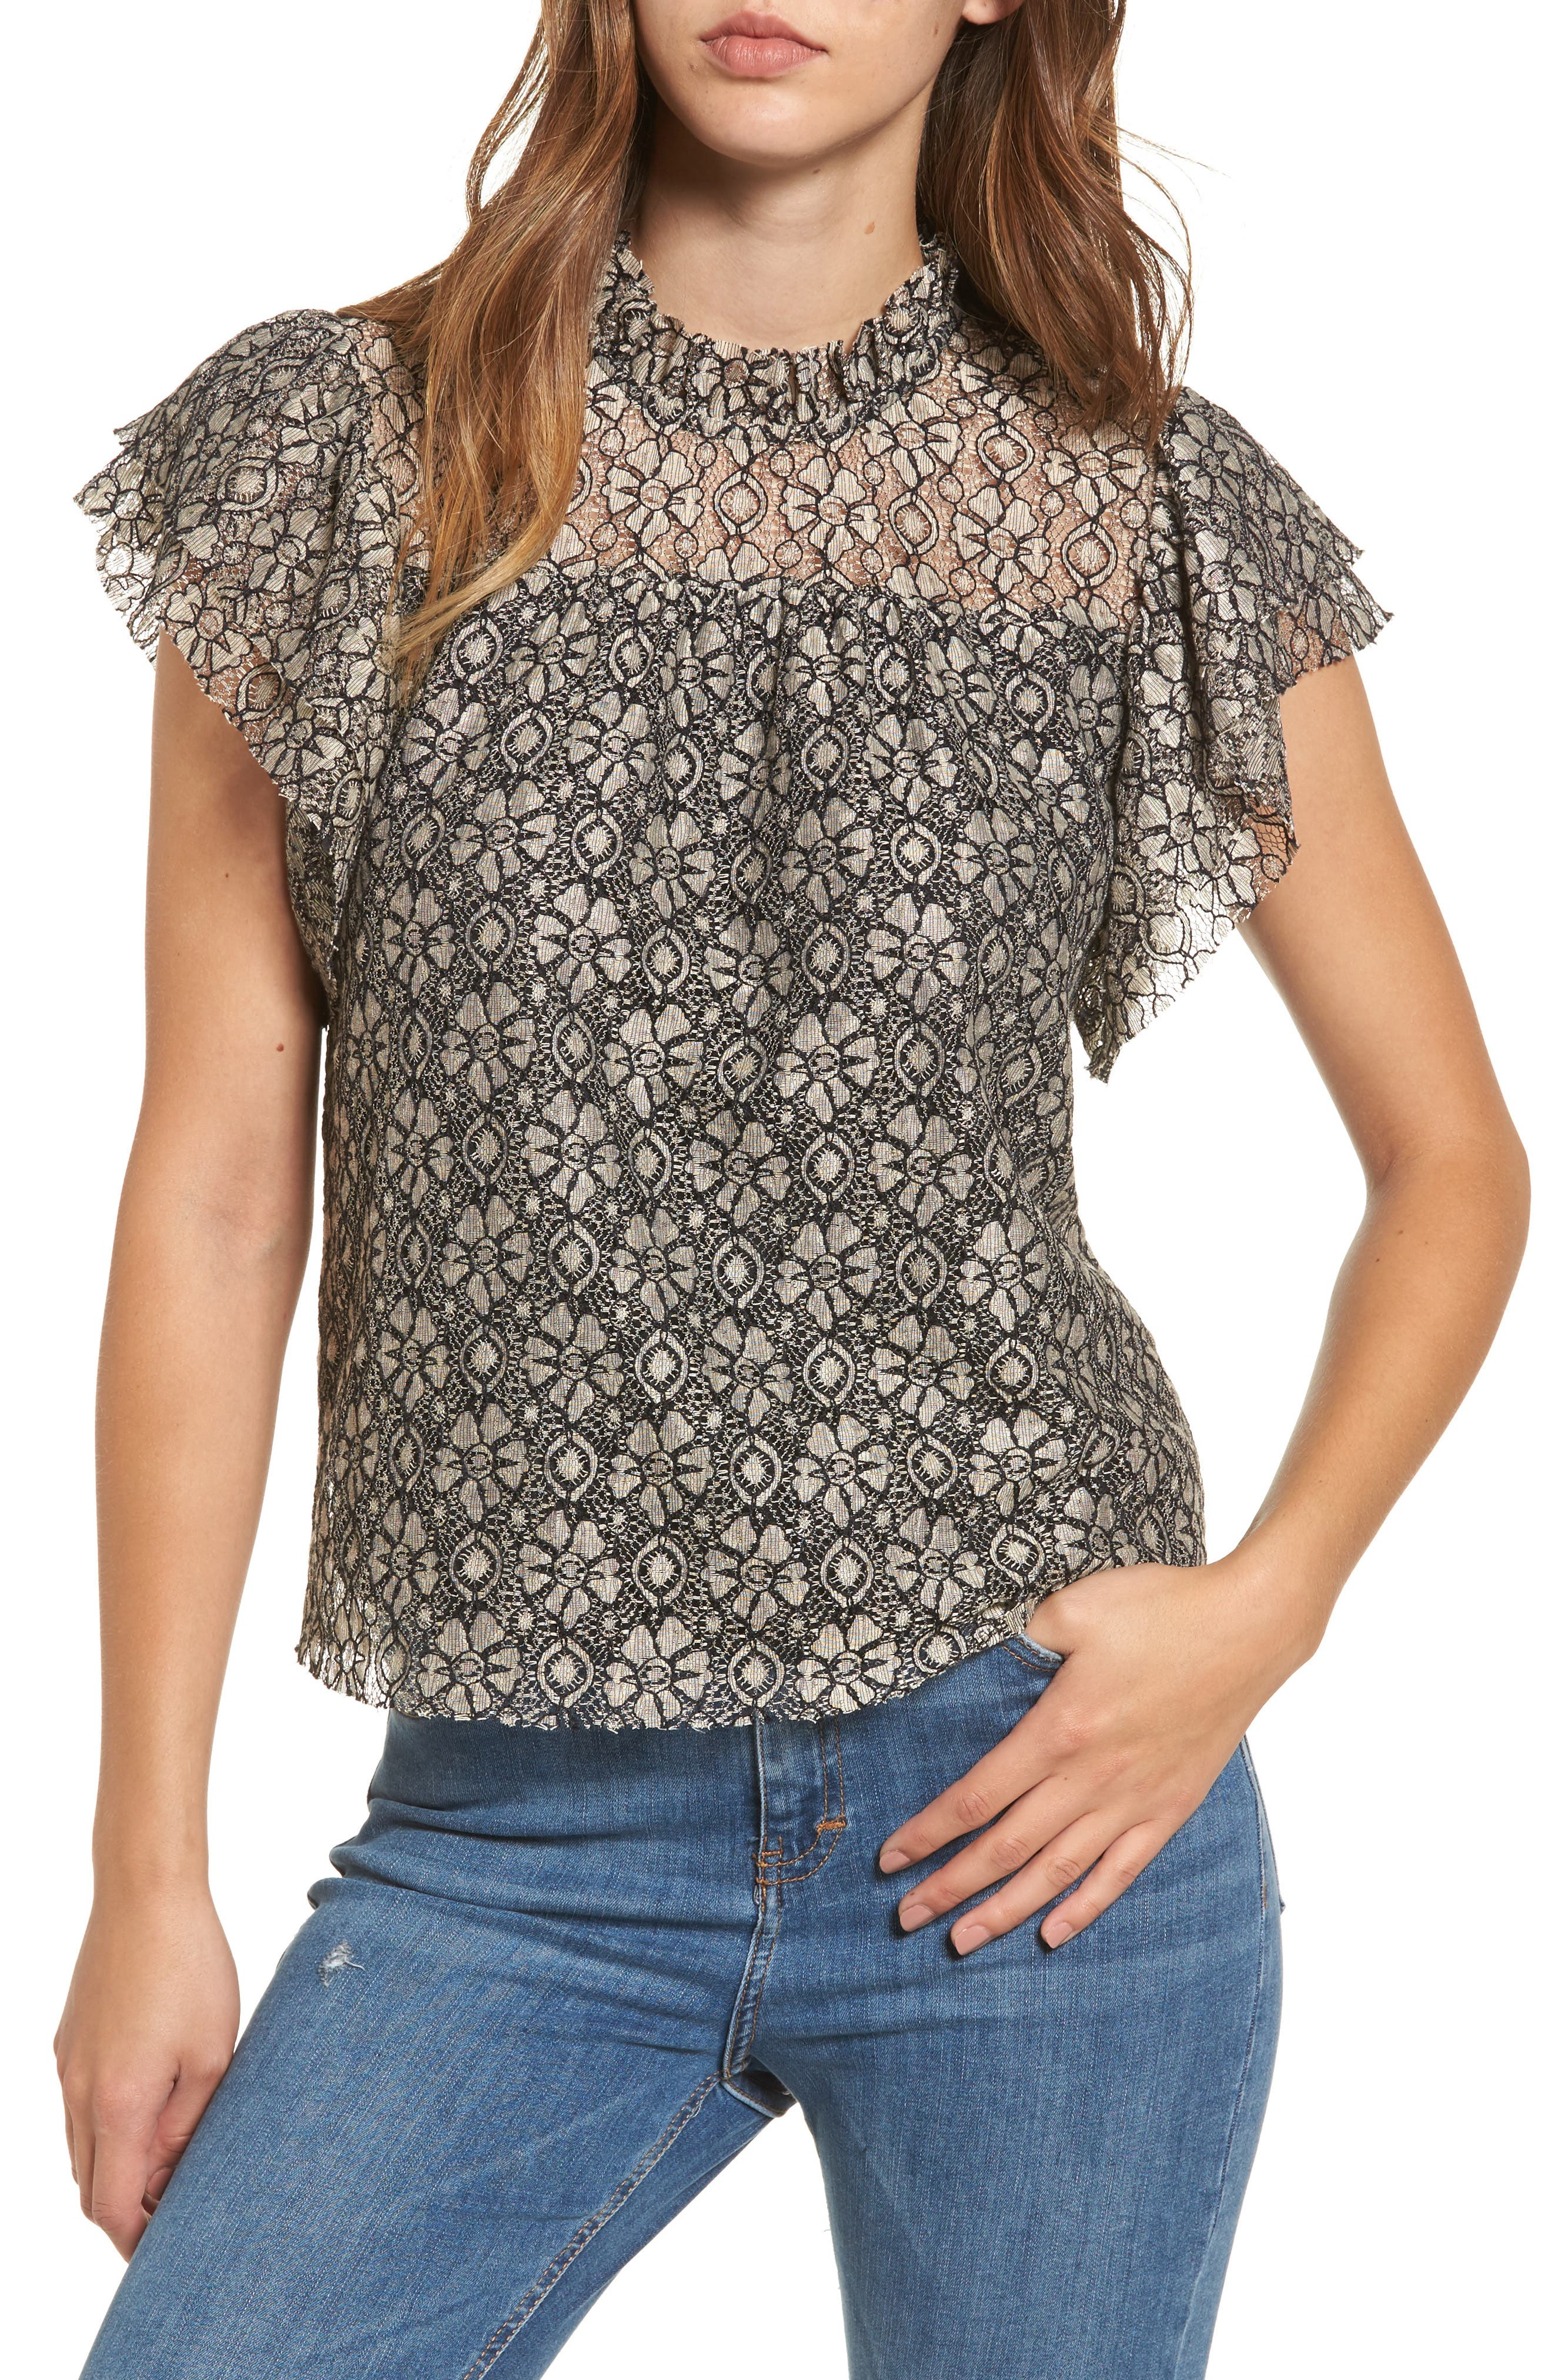 Ruffle Lace Top,                             Main thumbnail 1, color,                             Taupe/ Black